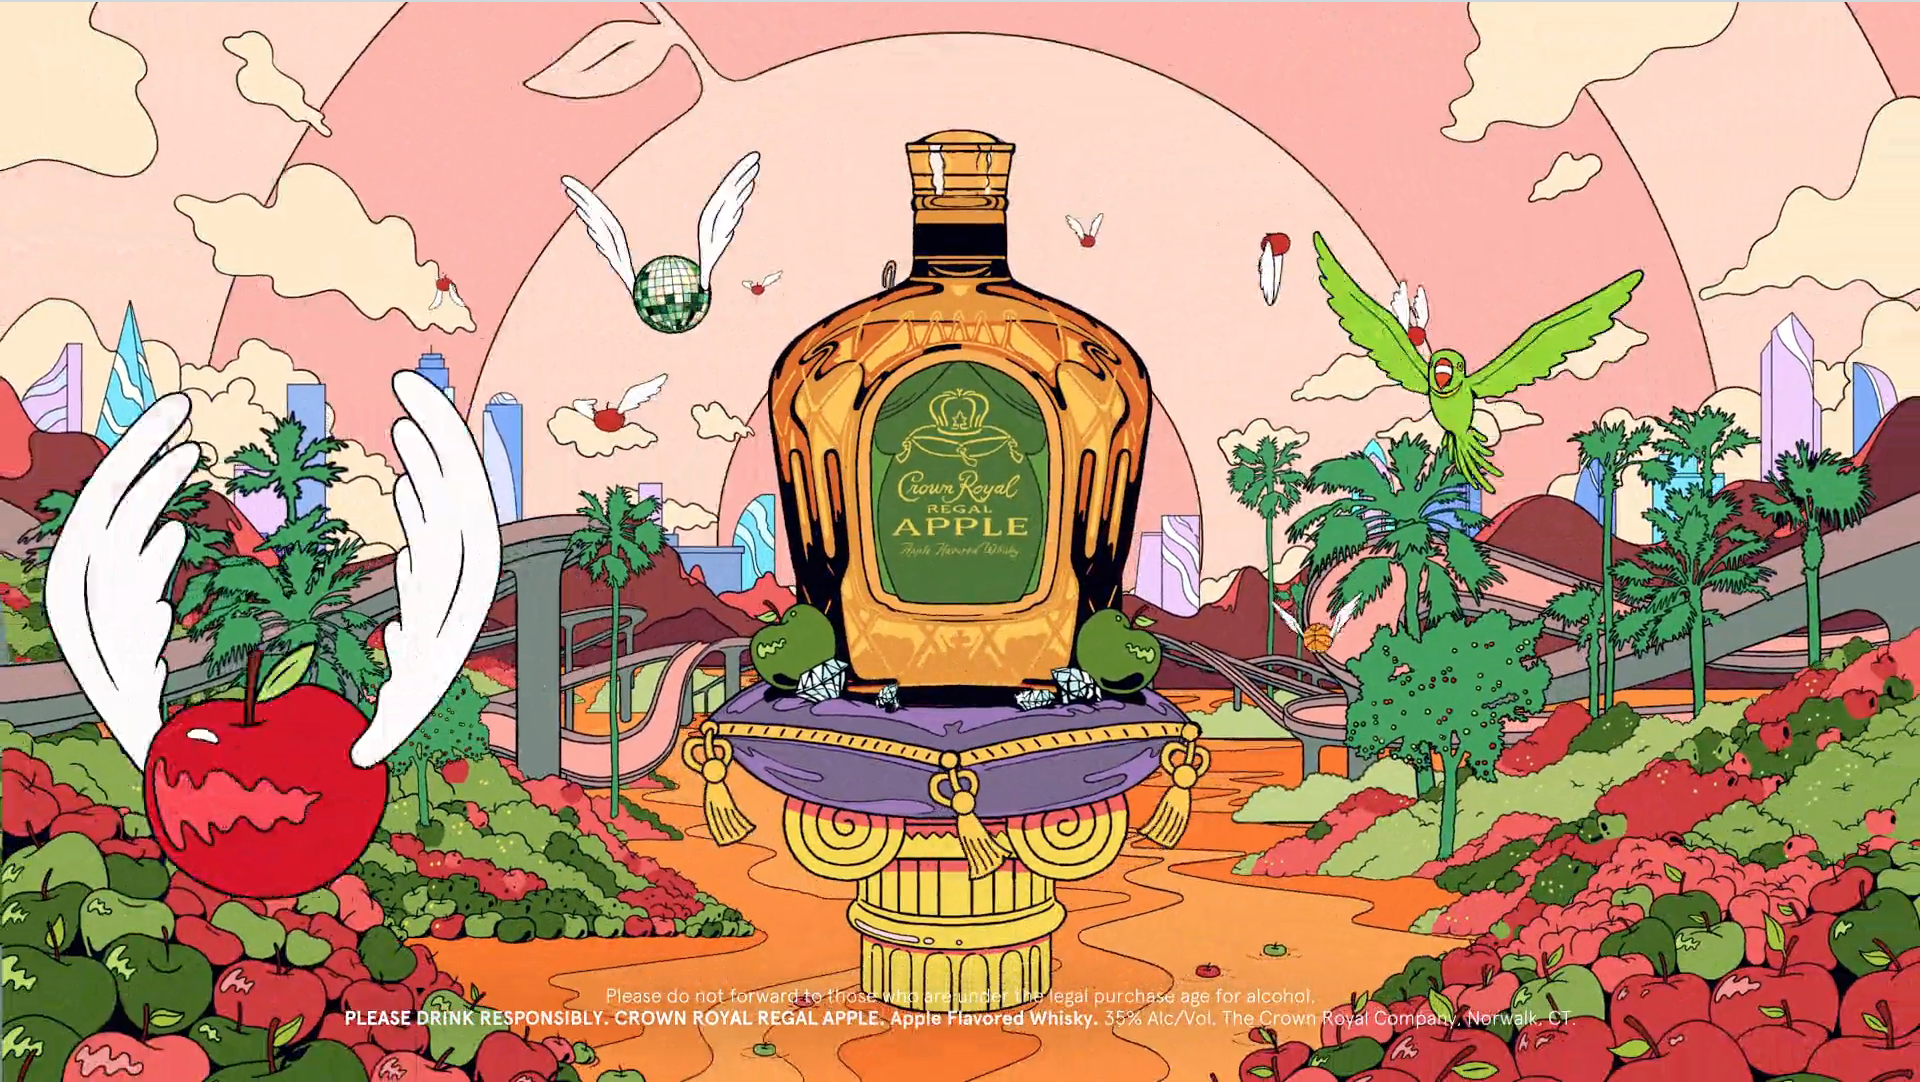 Trippin On Crown Royal Apple With Golden Wolf Stash Magazine Motion Design Stash All png & cliparts images on nicepng are best quality. trippin on crown royal apple with